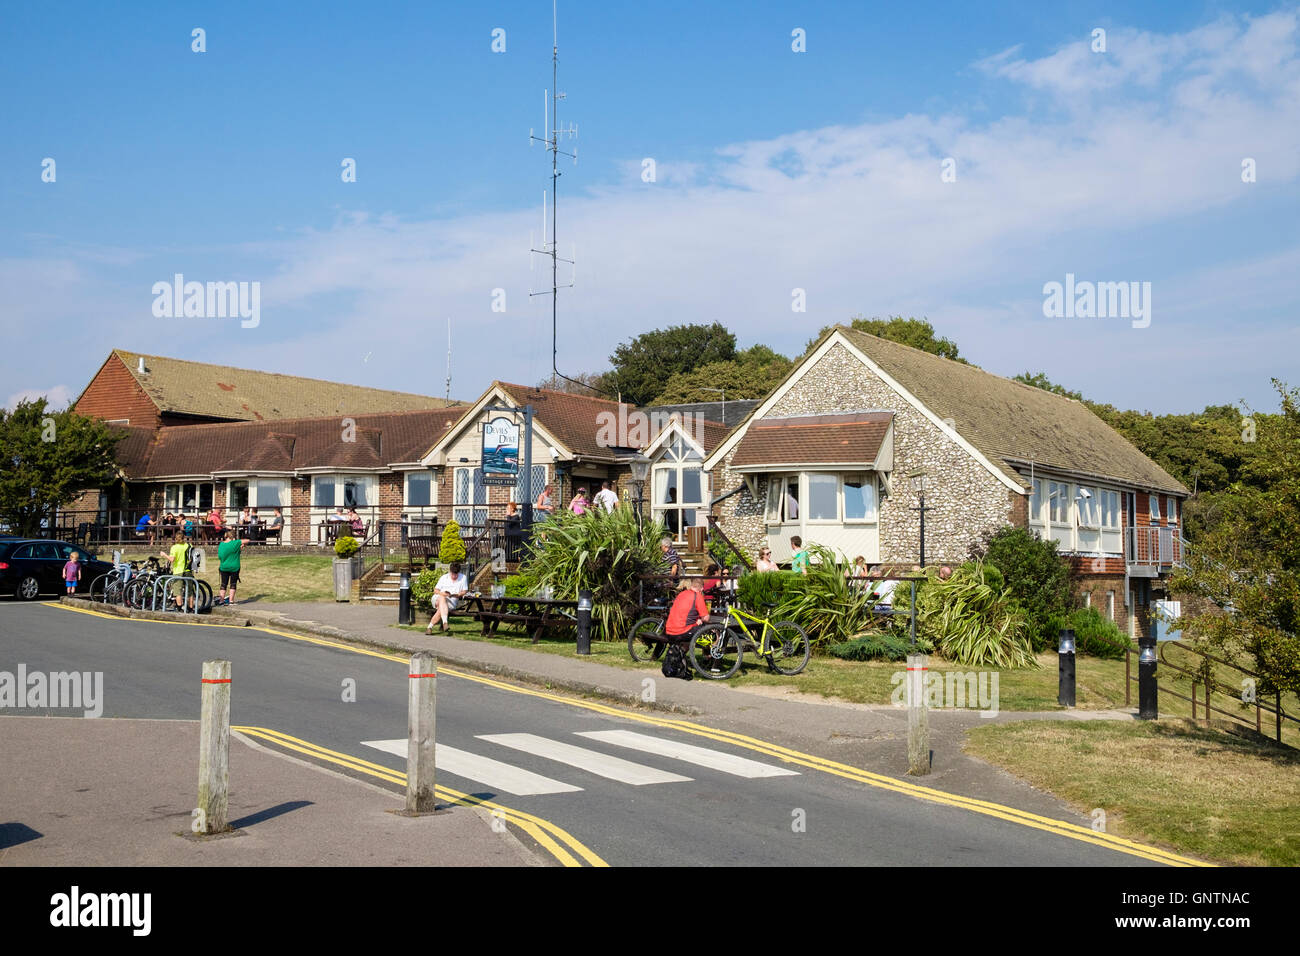 Devils Dyke pub with people dining out in the South Downs National Park. Brighton, West Sussex, England, UK, Britain - Stock Image